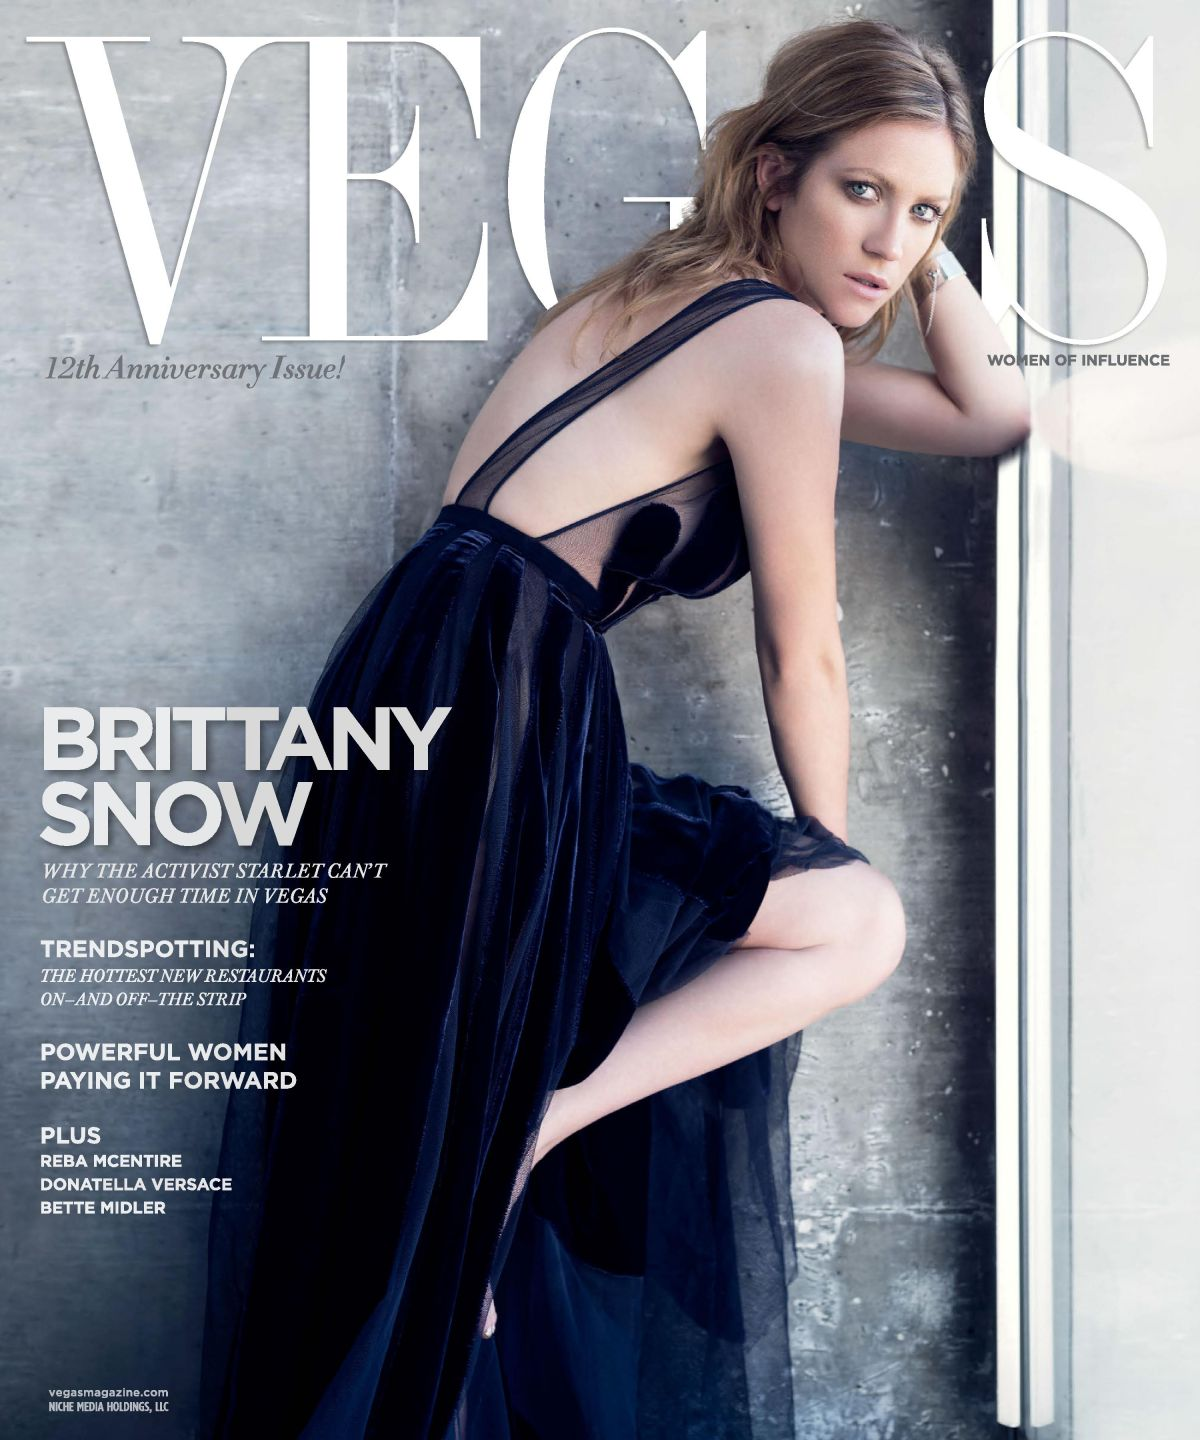 BRITTANY SNOW in Vegas Magazine, May/June 2015 Ossie